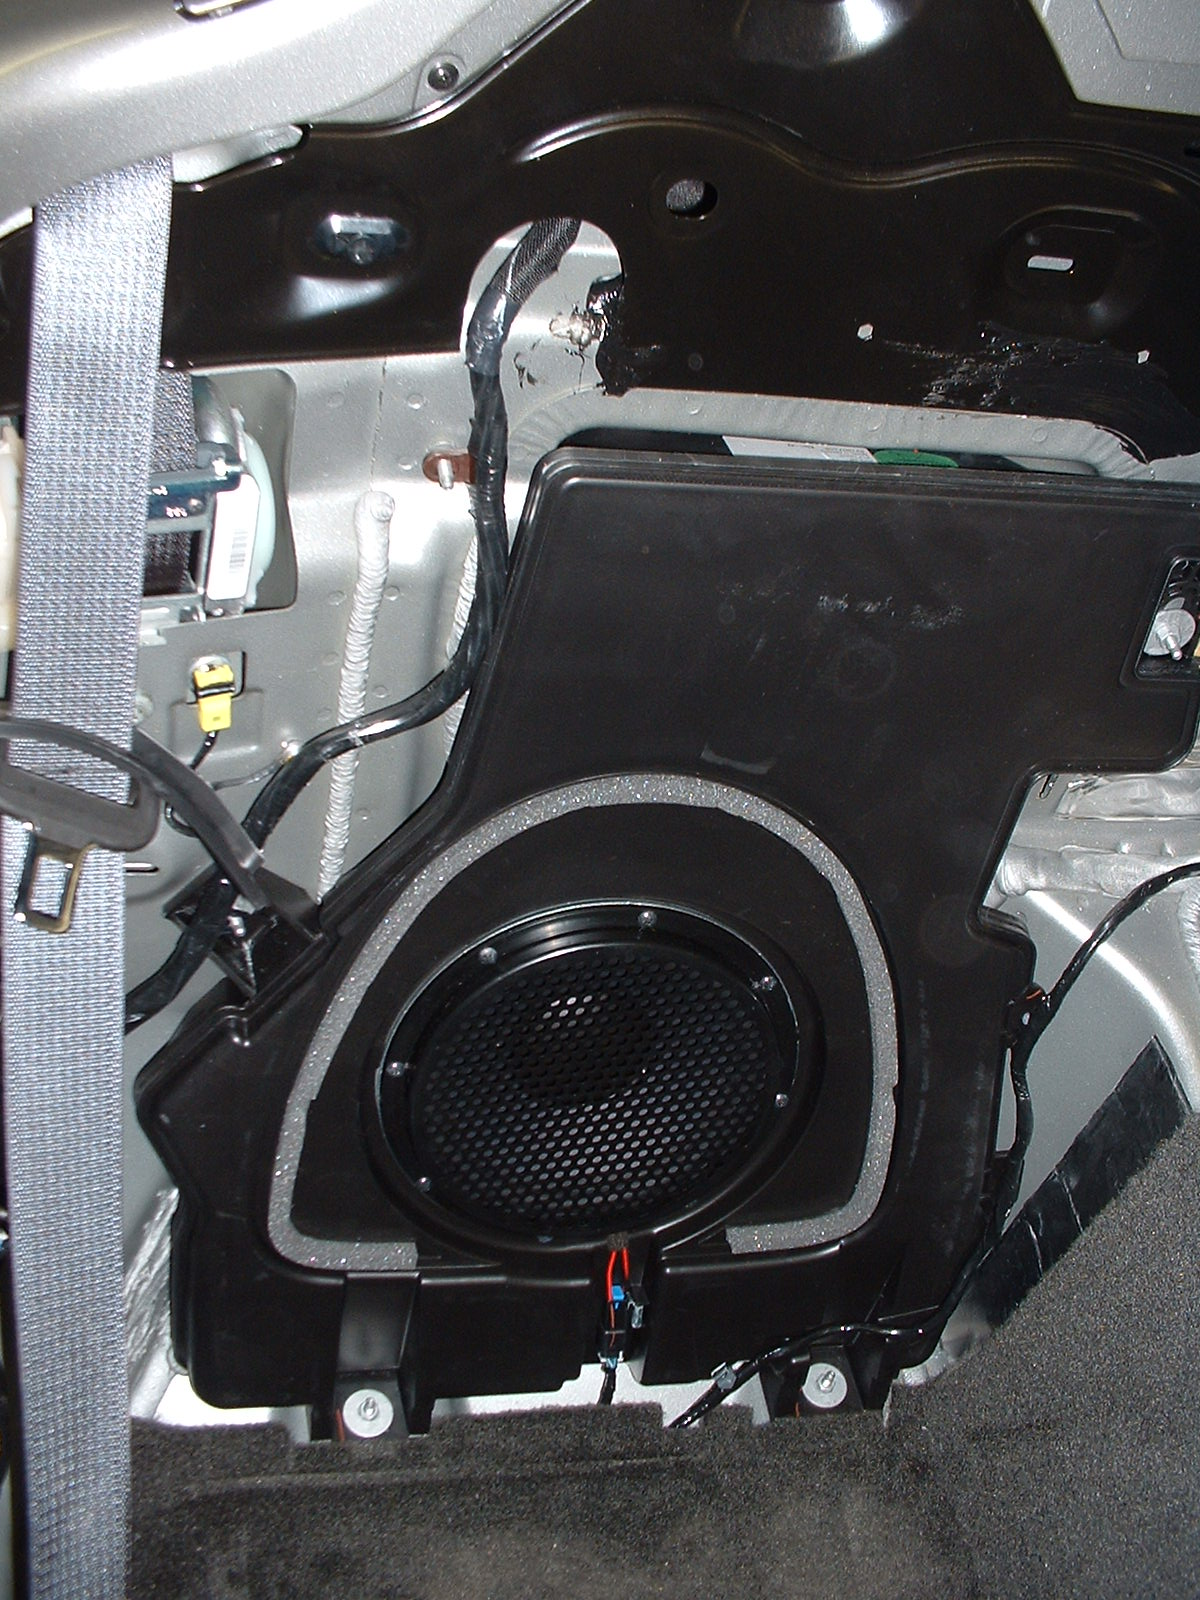 Monsoon Sub And Amp Nekkid Pictures Pontiac Solstice